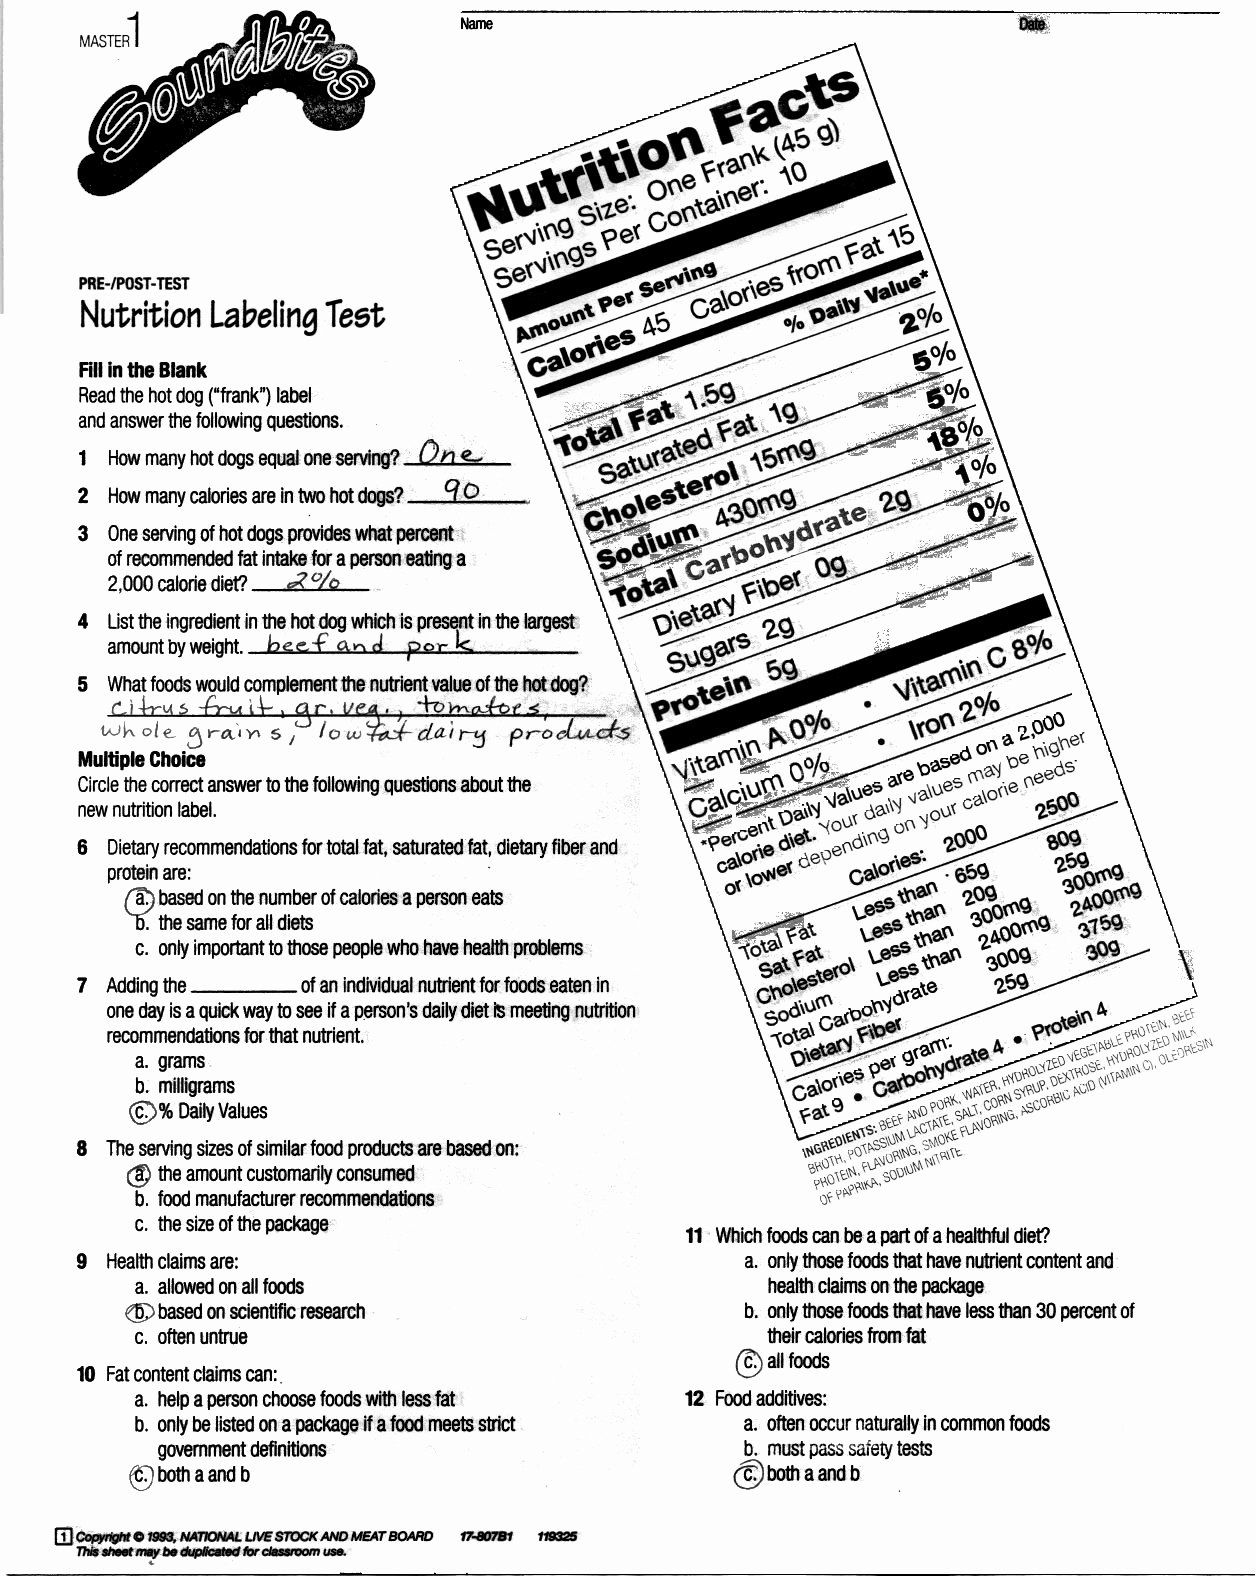 Nutrition Label Worksheet Answer Key Best Of Reading Nutrition Labels Worksheet High School Besto B In 2020 Reading Food Labels Nutrition Labels Nutrition Activities